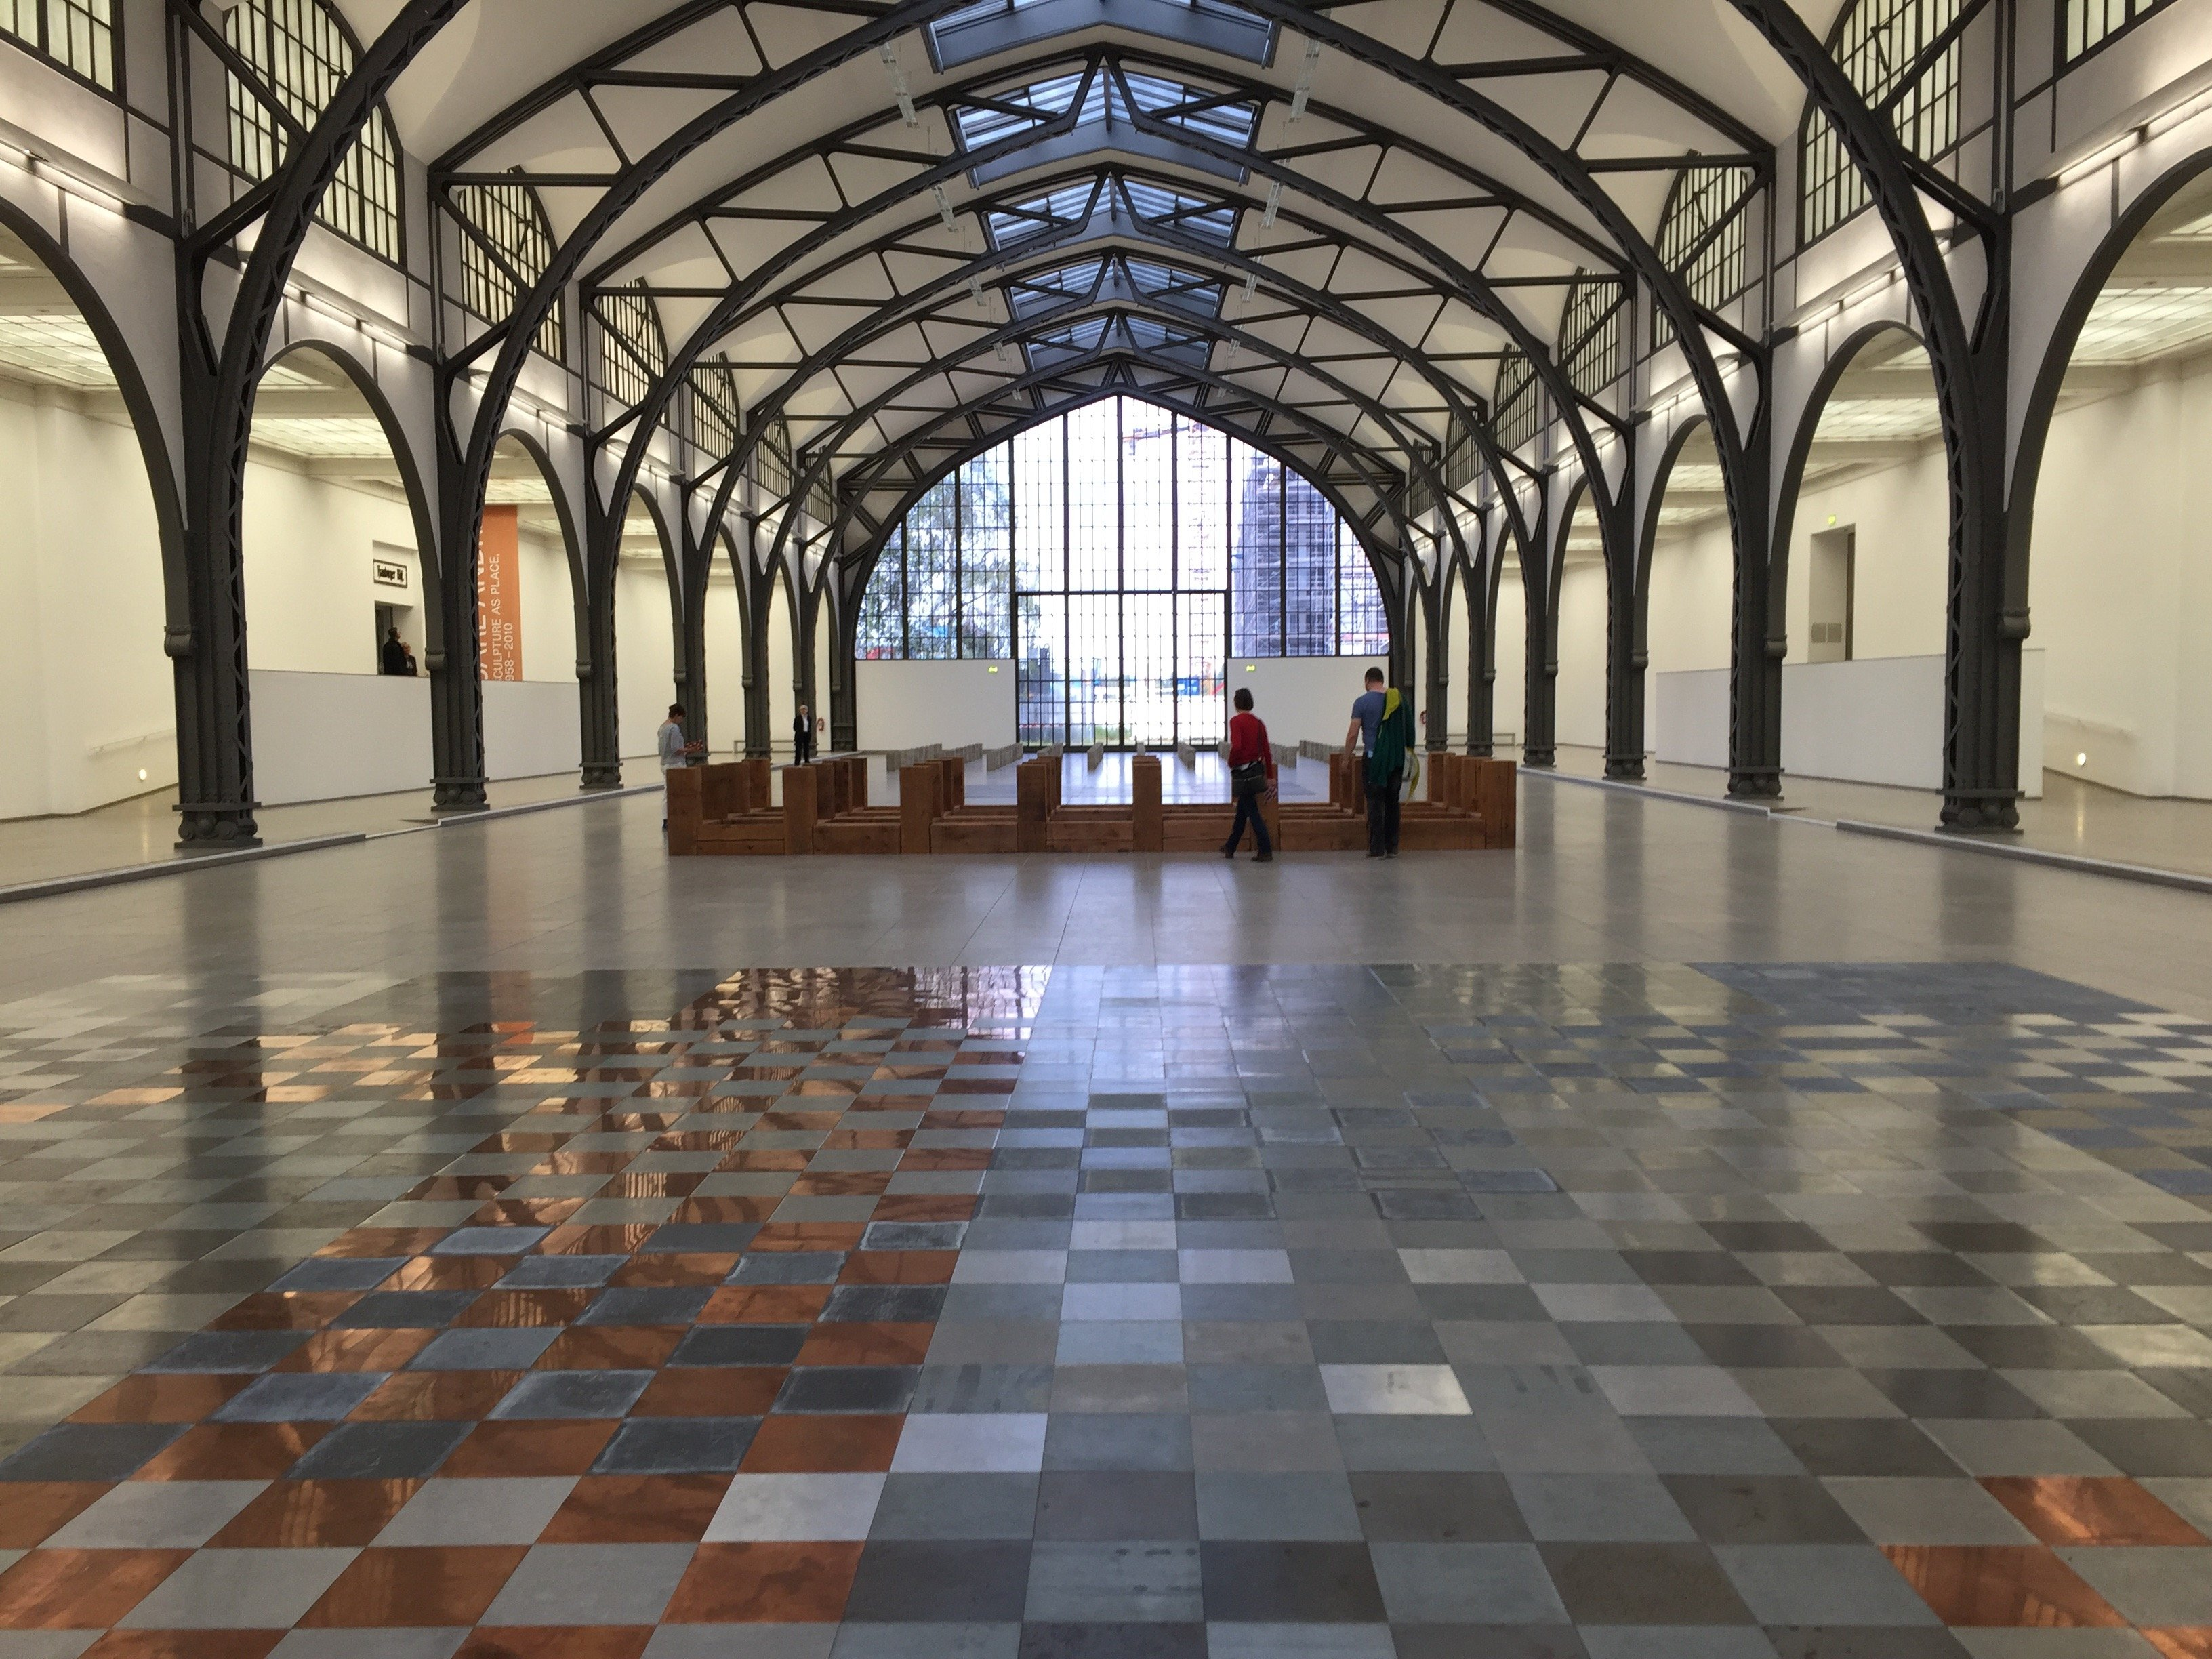 Exhibition view, Carl Andre: Sculpture as Place, 1958-2010 at Hamburger Banhof Museum fur Gegenwart - Berlin. Courtesy Diana d'Arenberg.